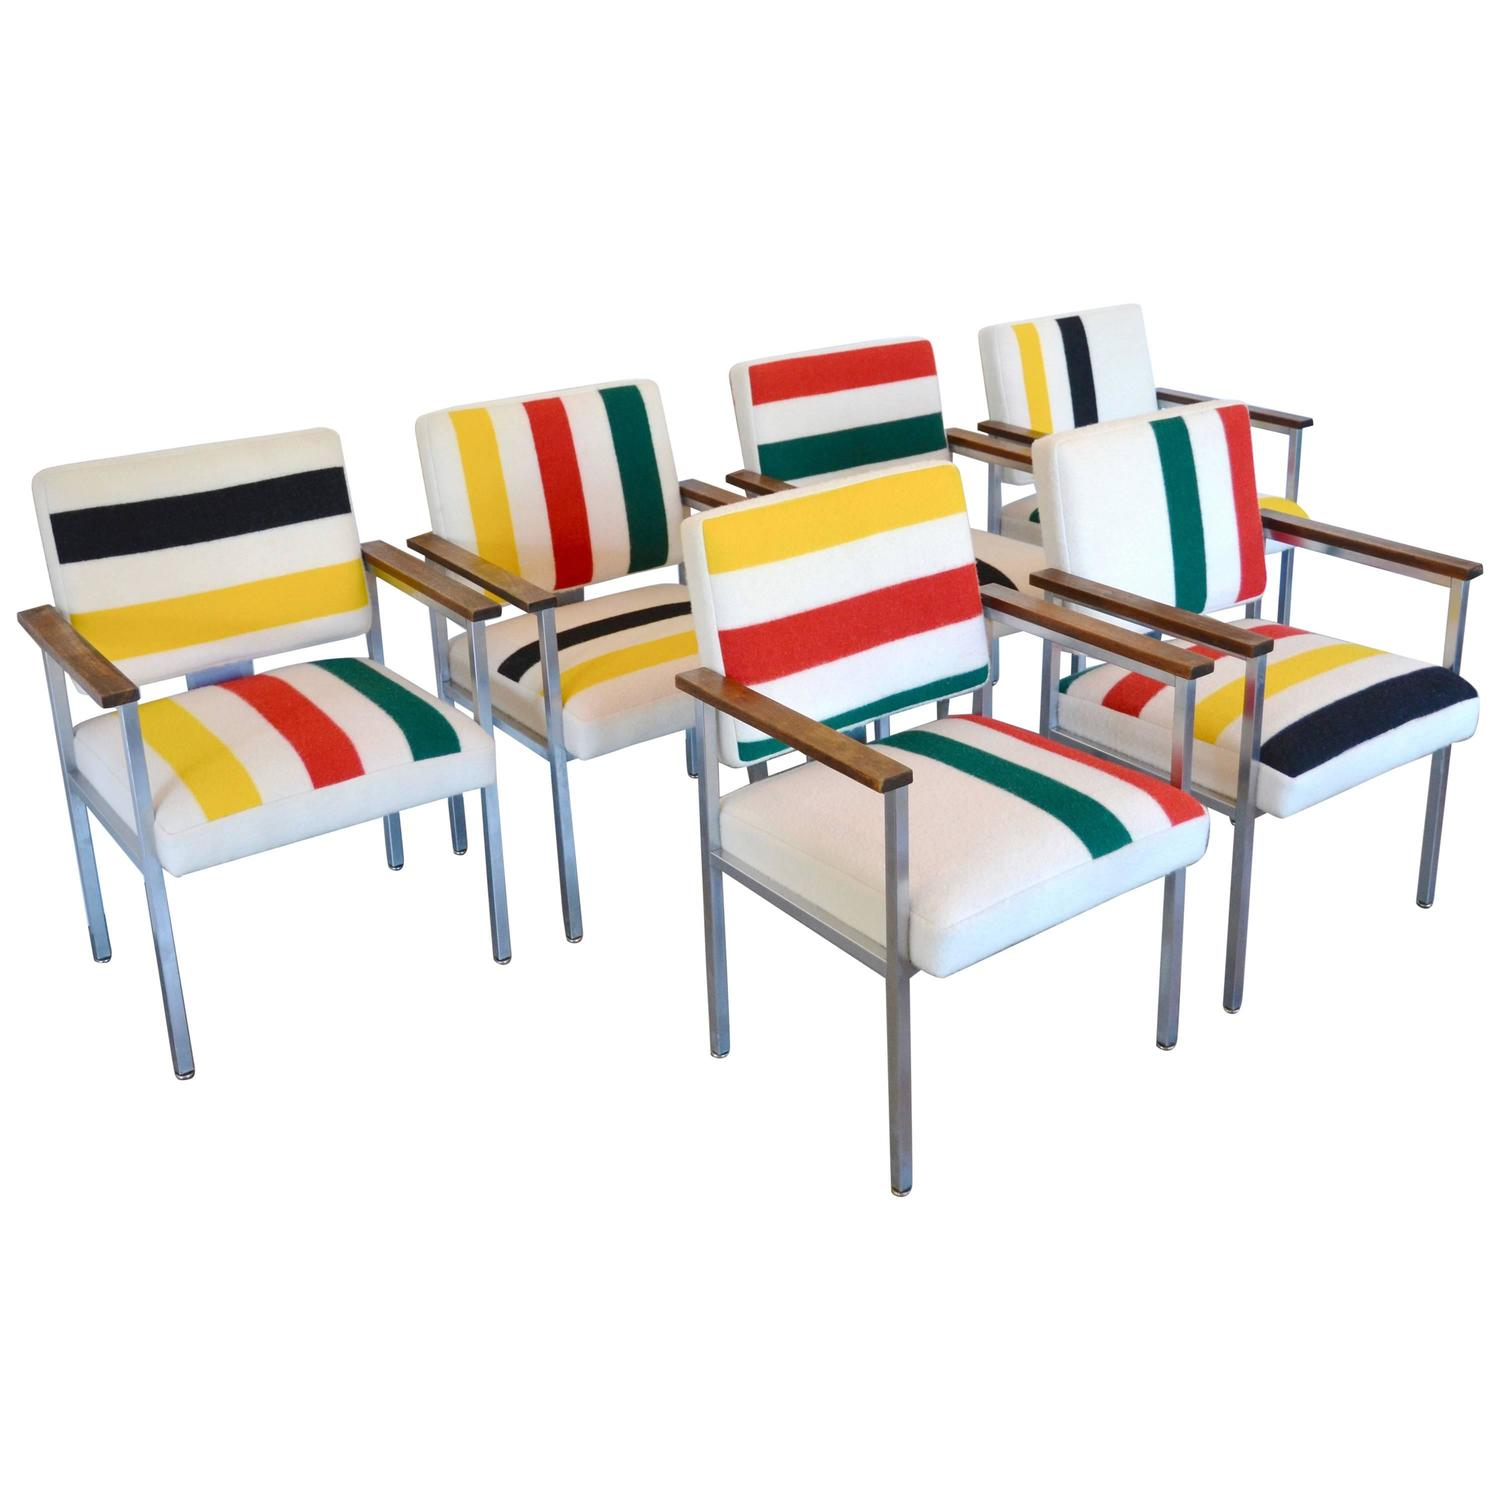 Midcentury Chairs With Stainless Frames, Wood Arms And Pendleton Stripes:  Each For Sale At 1stdibs